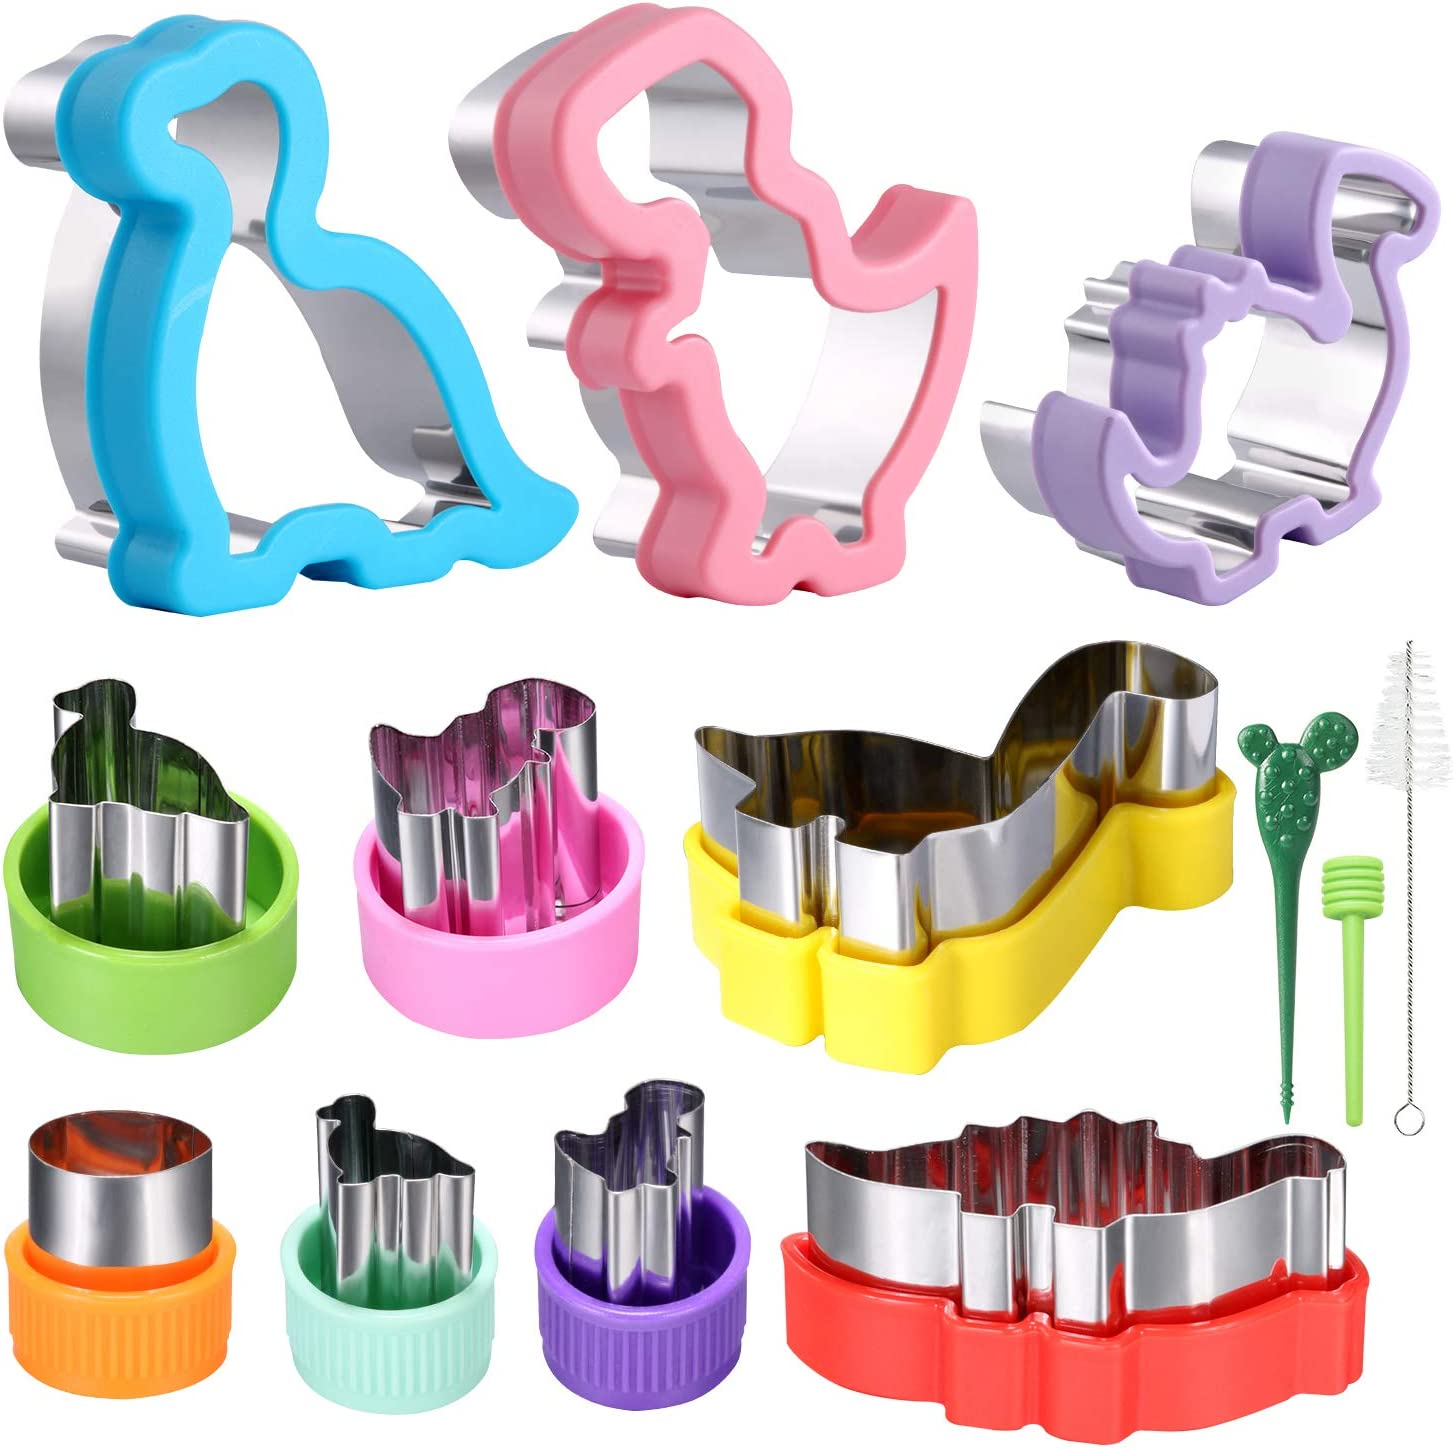 Dinosaur Cookie Cutter Set Sandwiches Cutter Set for Kids 9 Different Shapes and Sizes